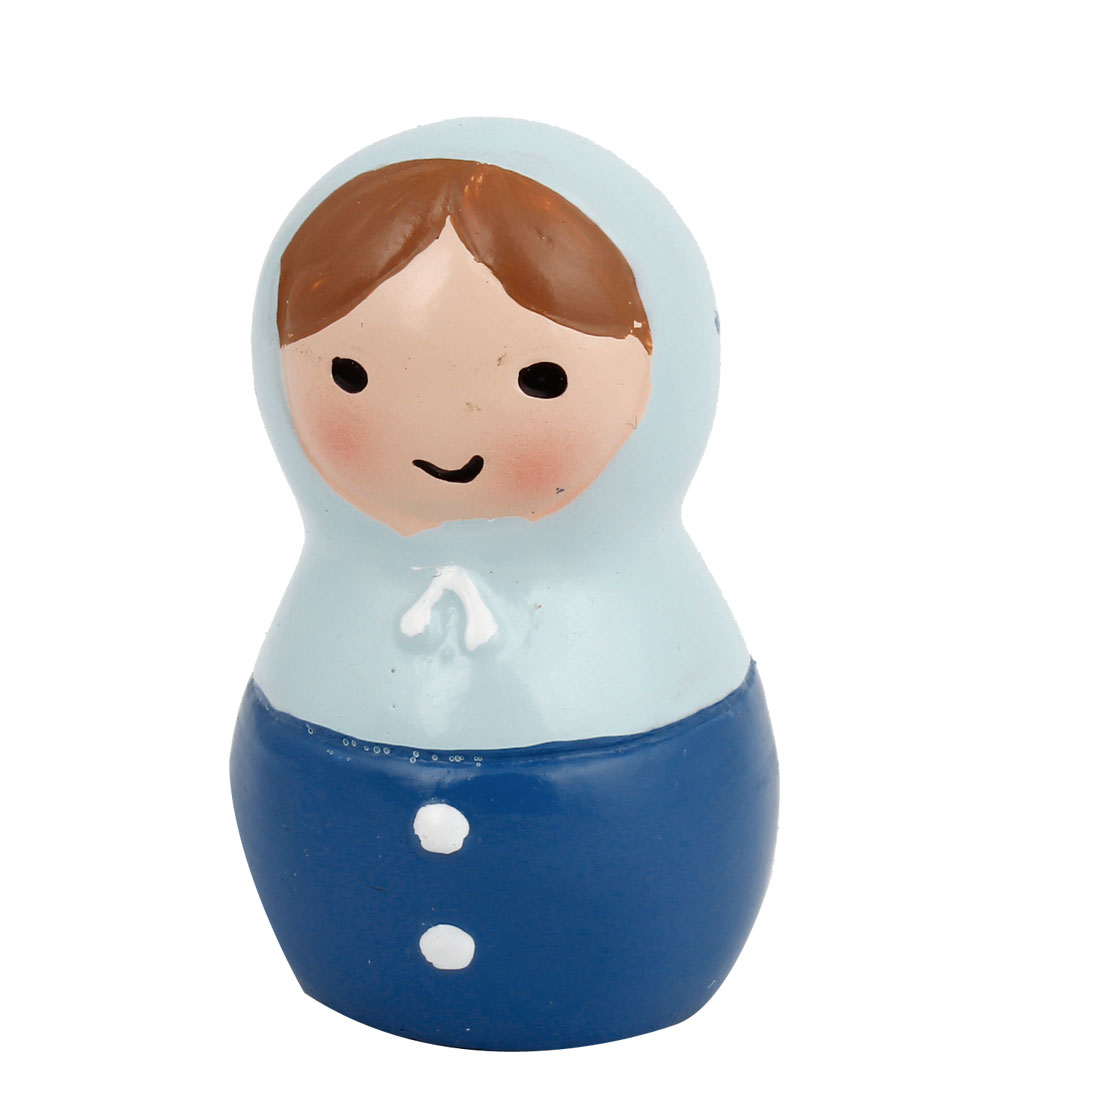 Tabletop Adorn Artifact Russian Doll Shape Ornament Blue